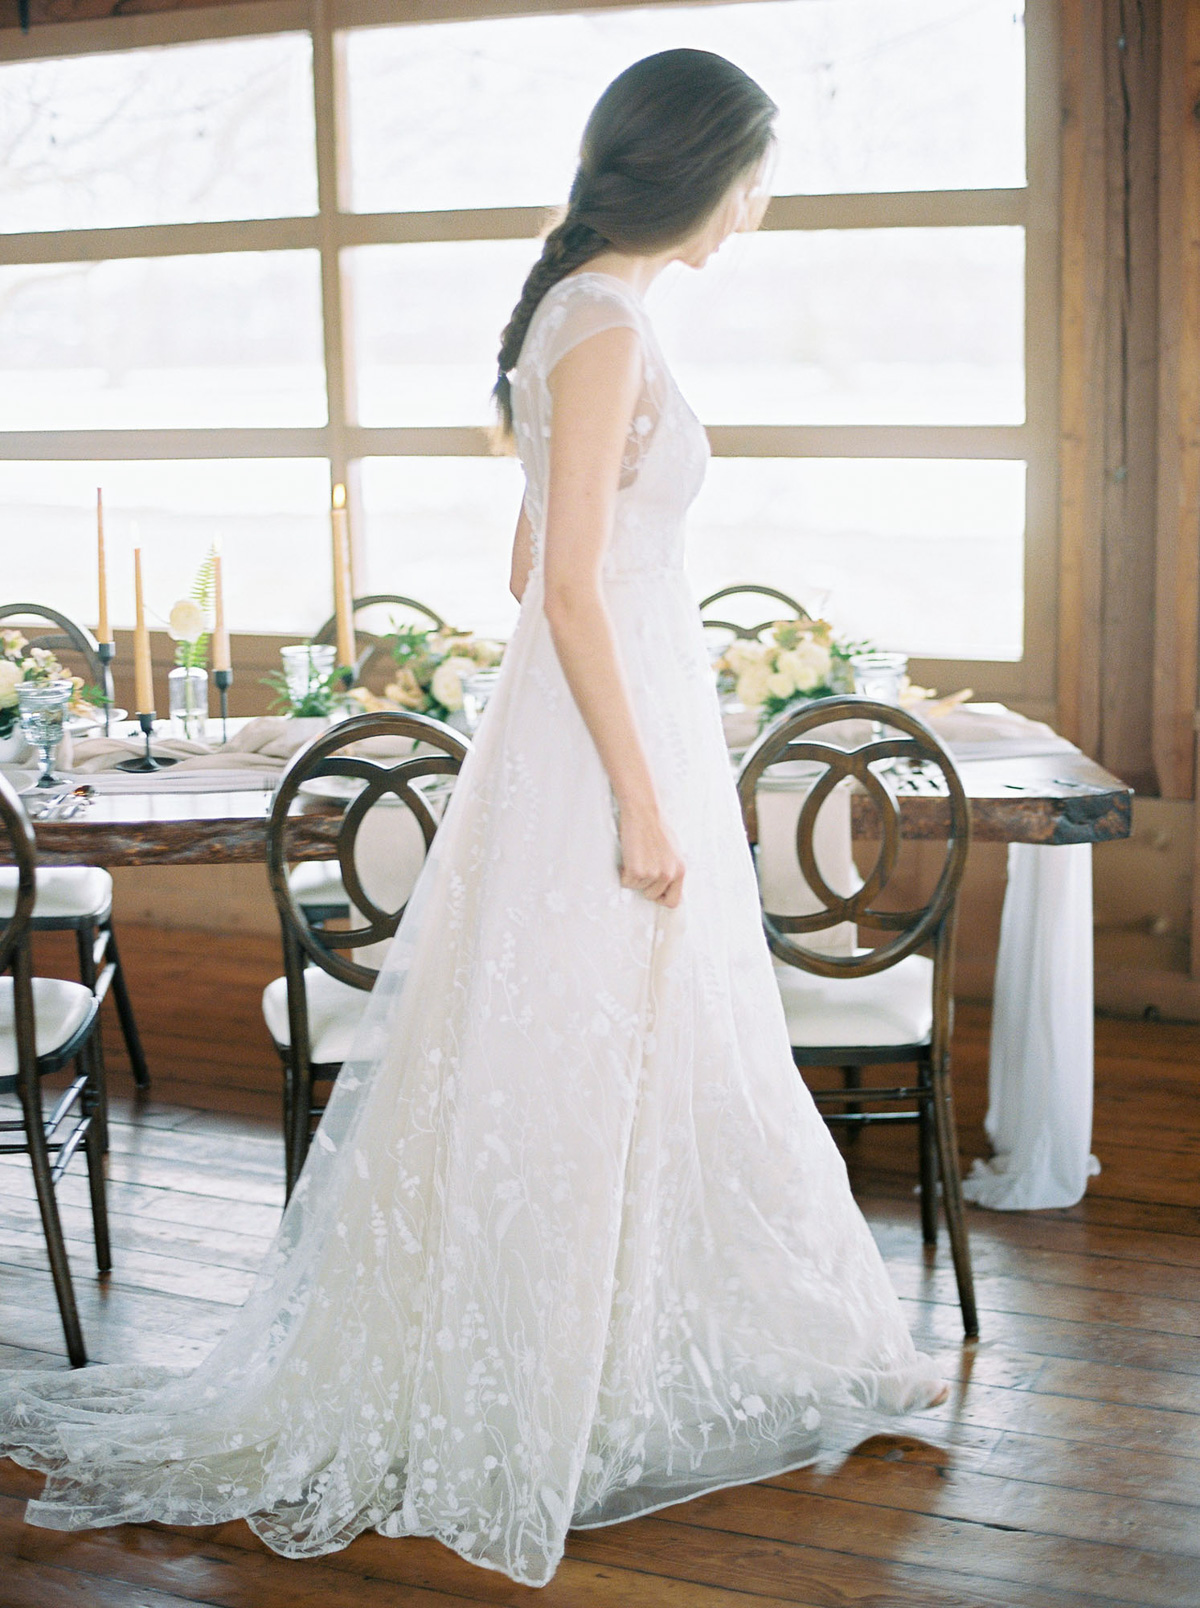 will-reid-photo-vineyard-bride-swish-list-kurtz-orchards-market-niagara-on-the-lake-wedding-editorial-28.jpg